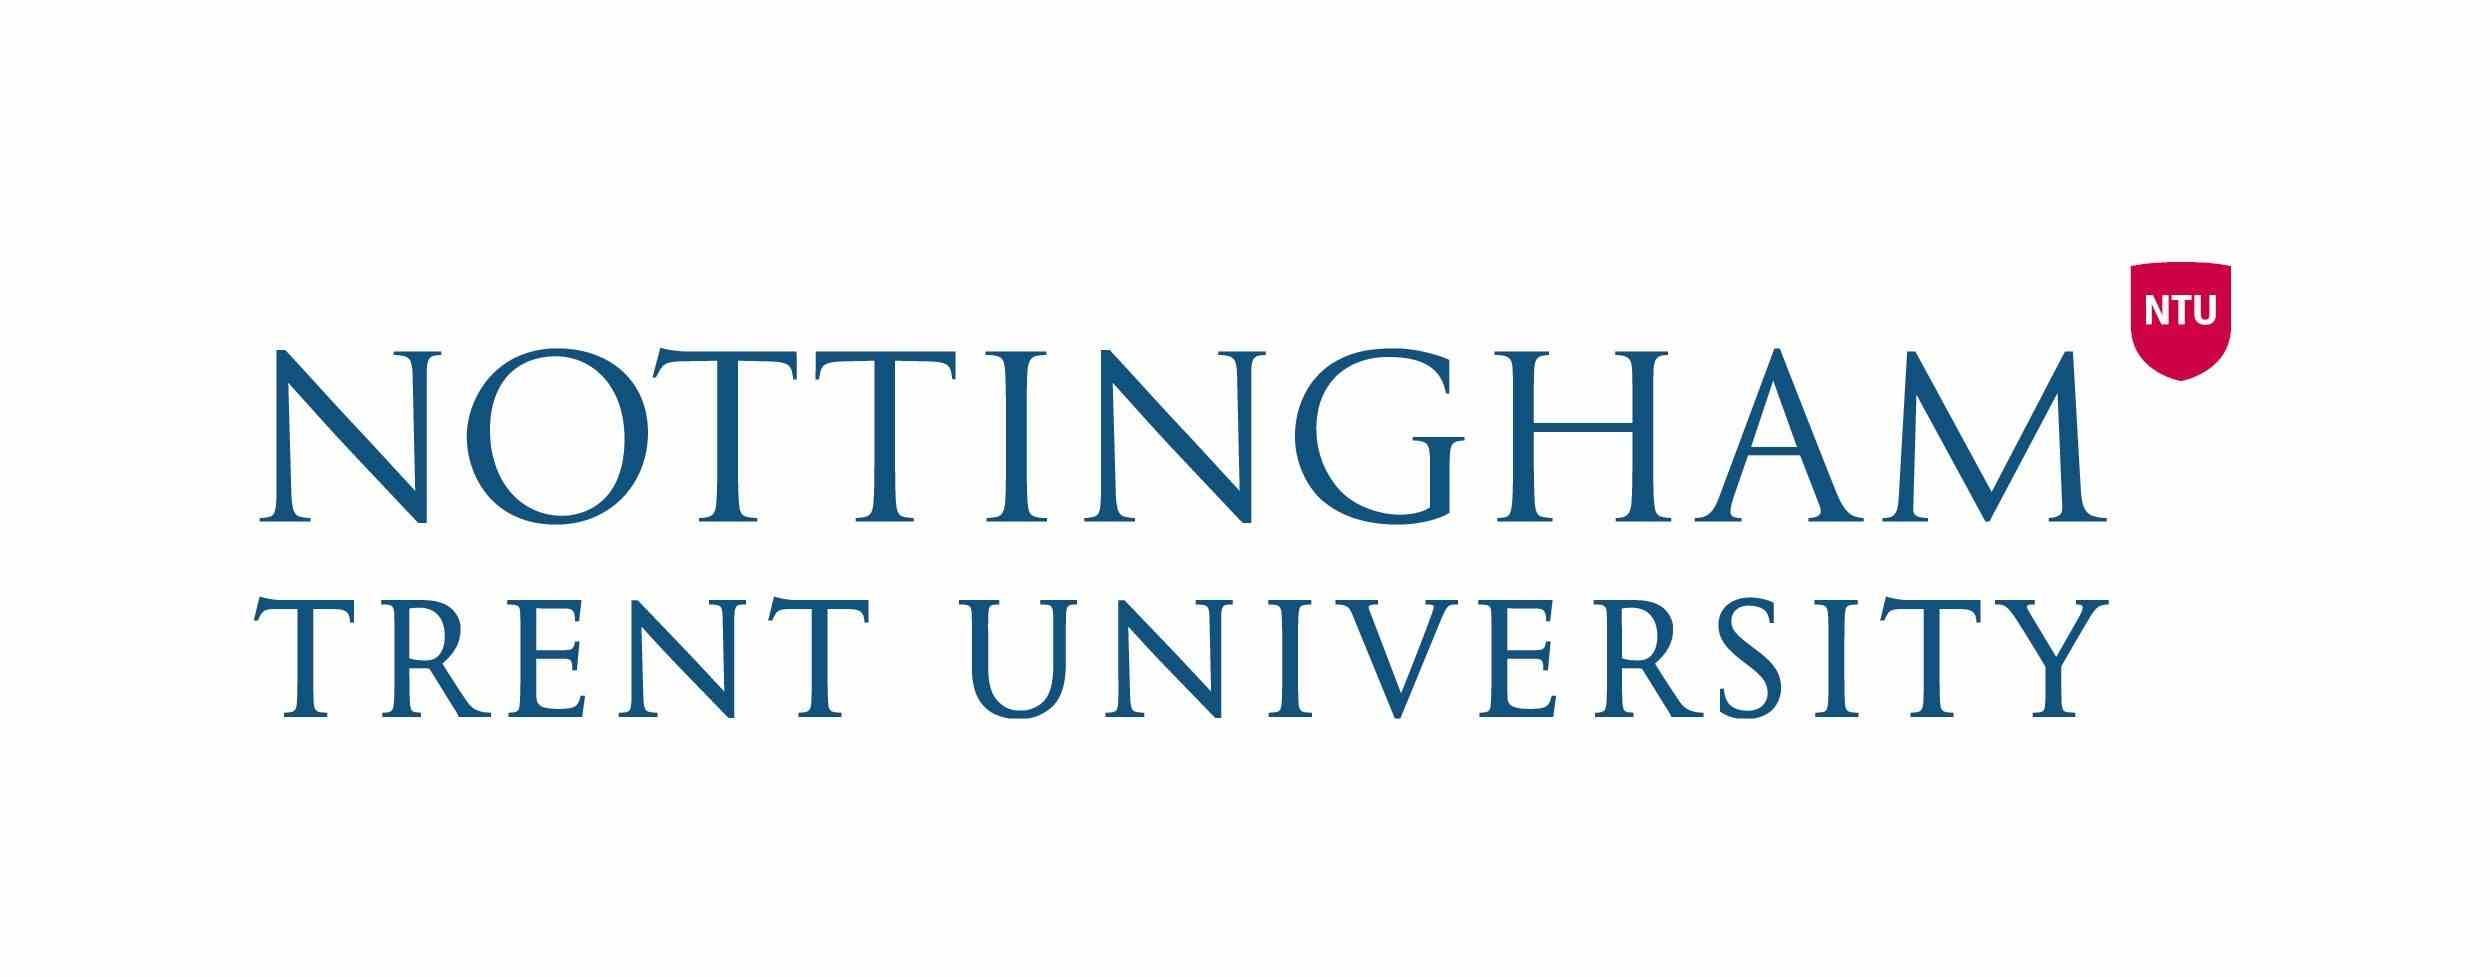 transport dissertation Entries are invited for the tgrg undergraduate dissertation prize which is awarded to the best undergraduate dissertation that focuses on any aspect of the geography of mobility and transport, undertaken at a uk university, and which demonstrates conceptual and/or methodological sophistication.